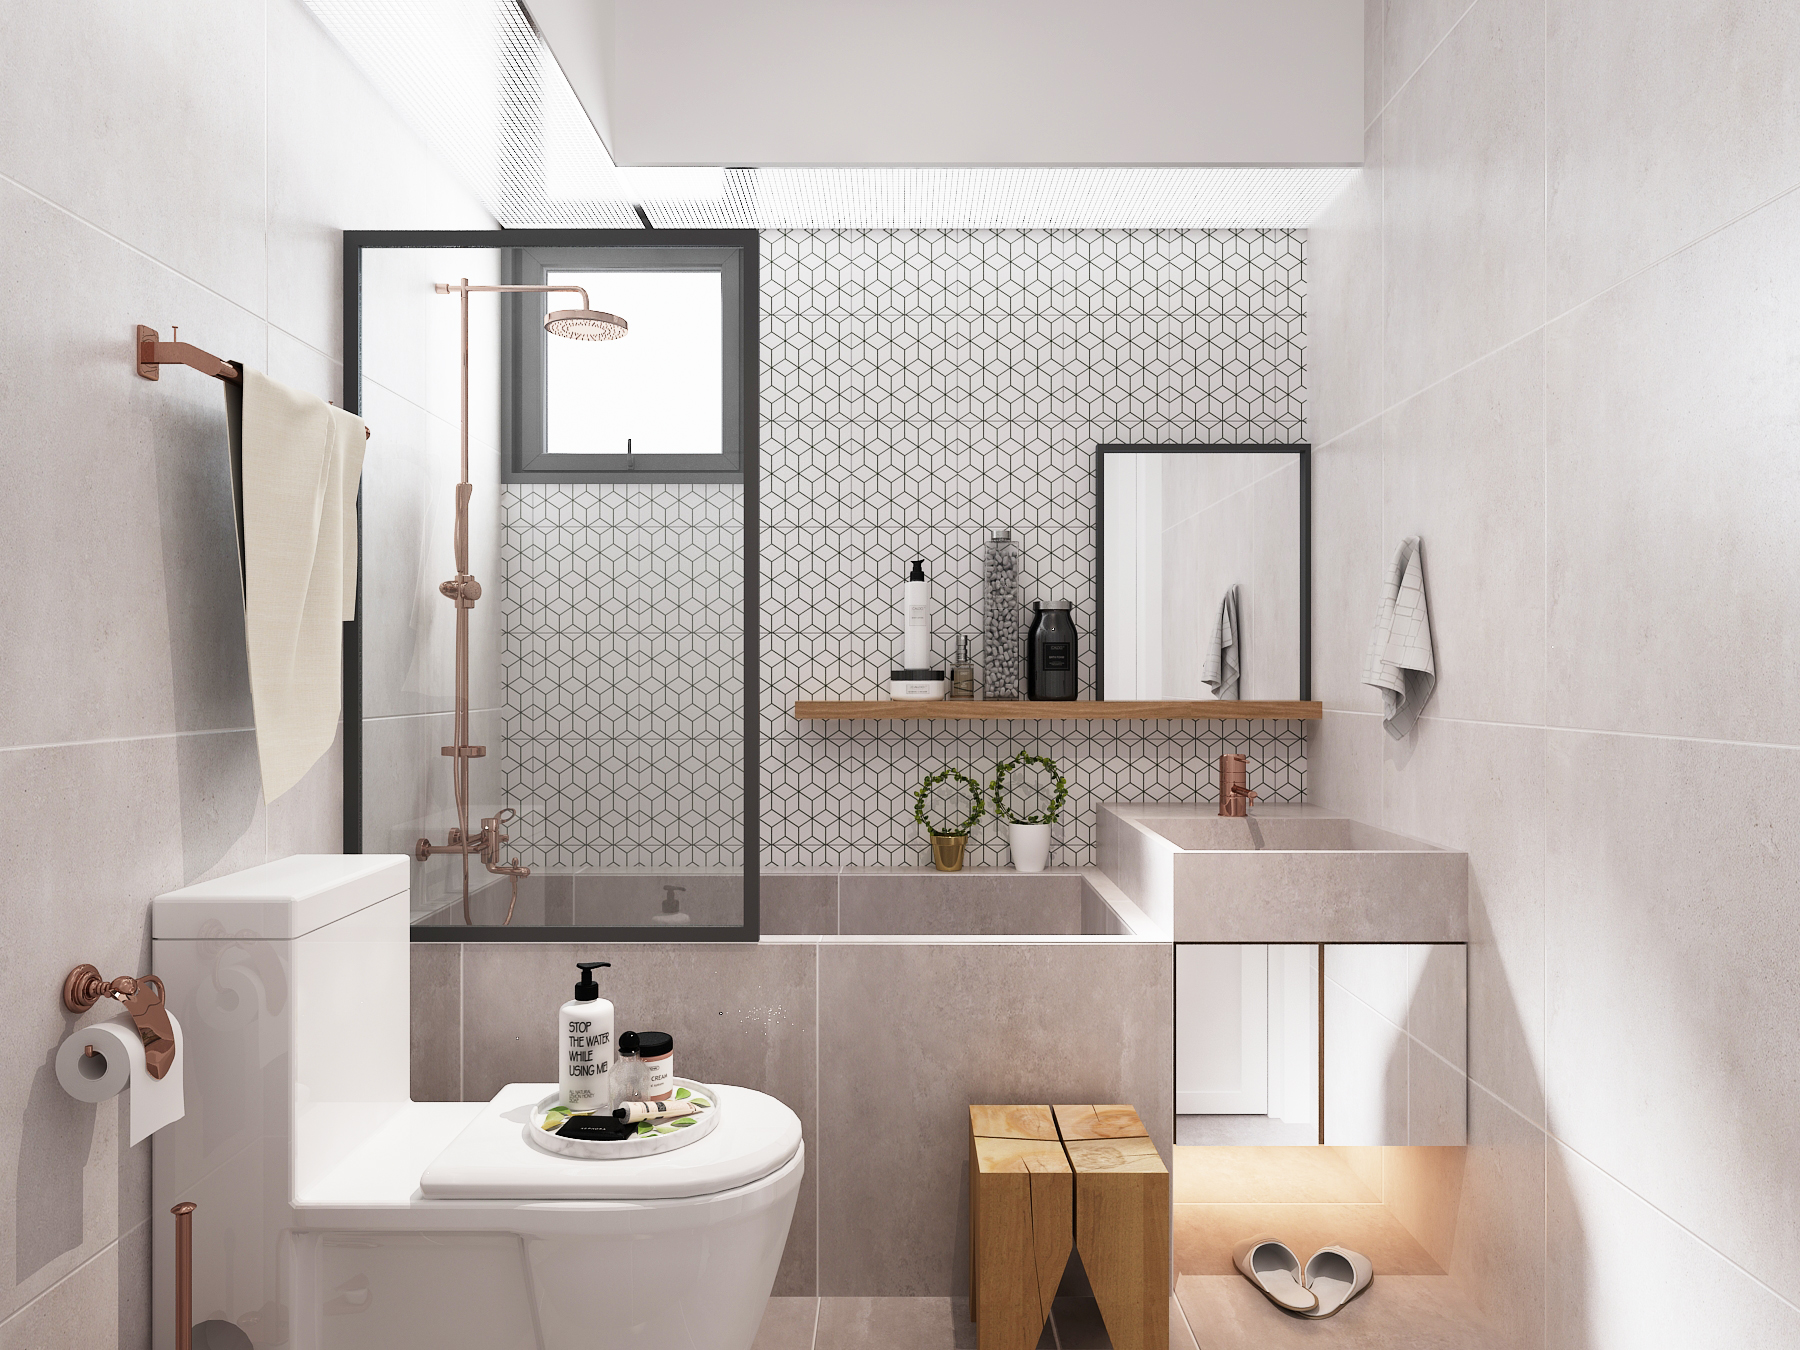 BLK 132C CANBERRA VIEW #08-77 03 COMMON BATHROOM 00